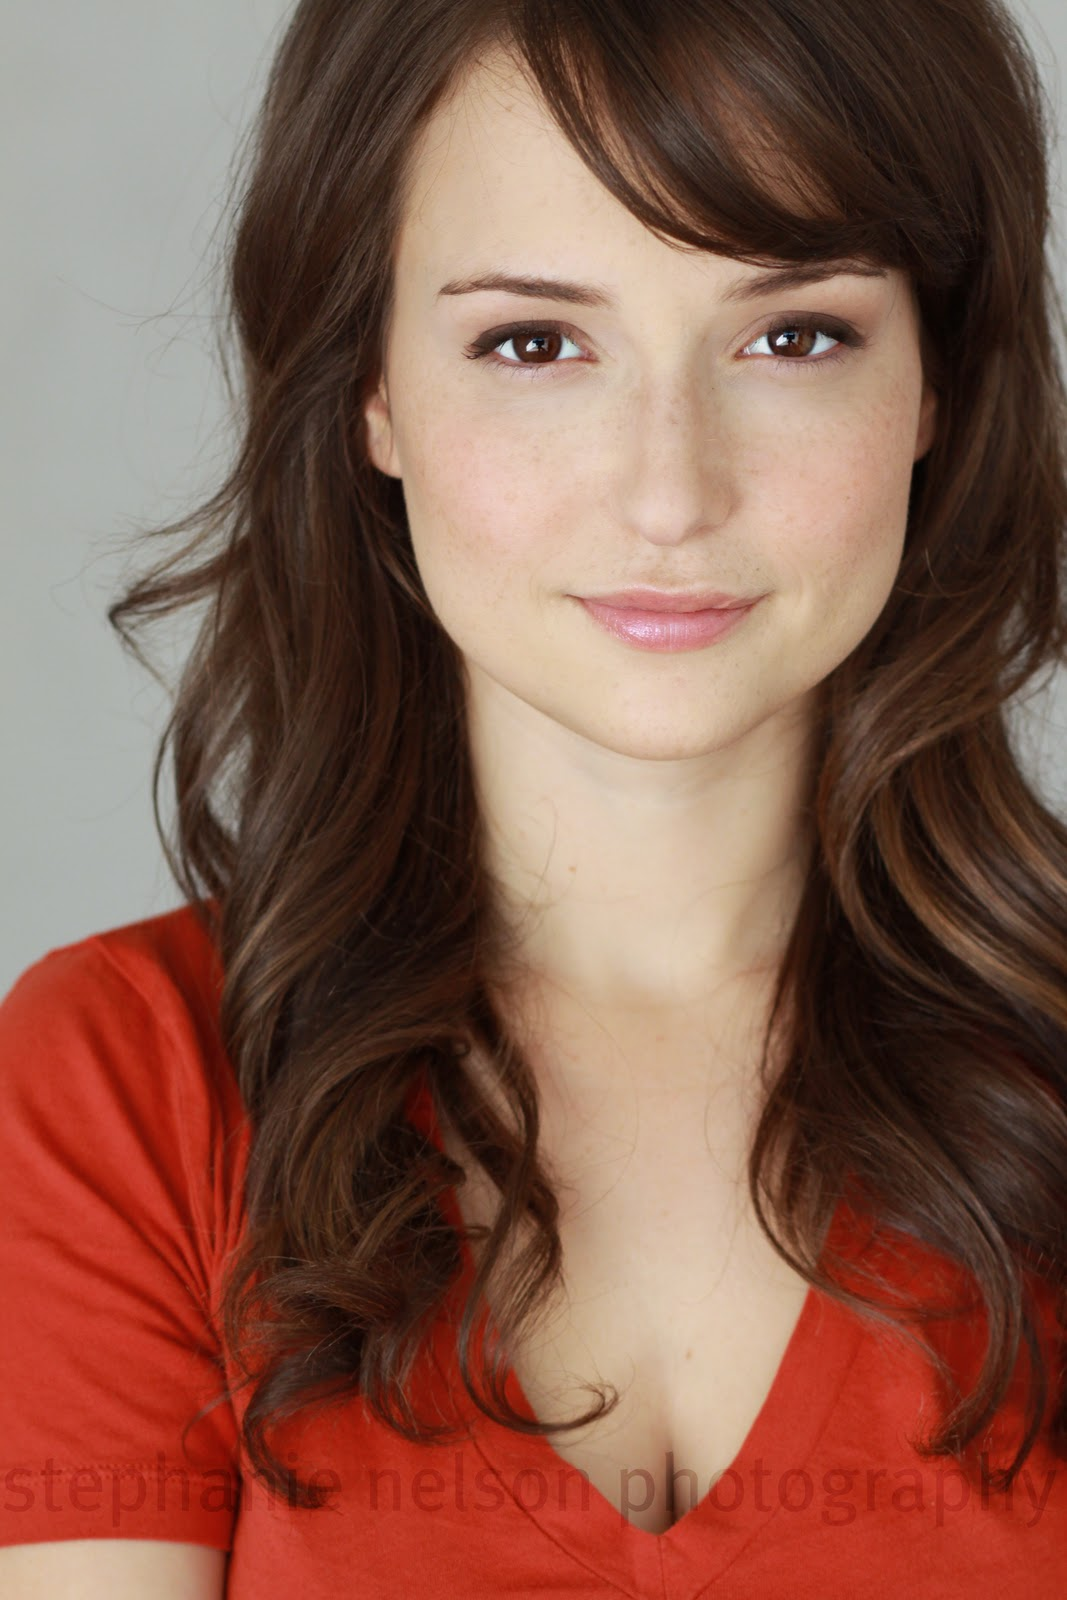 Stephanie Nelson Photography Milana Vayntrub Shots